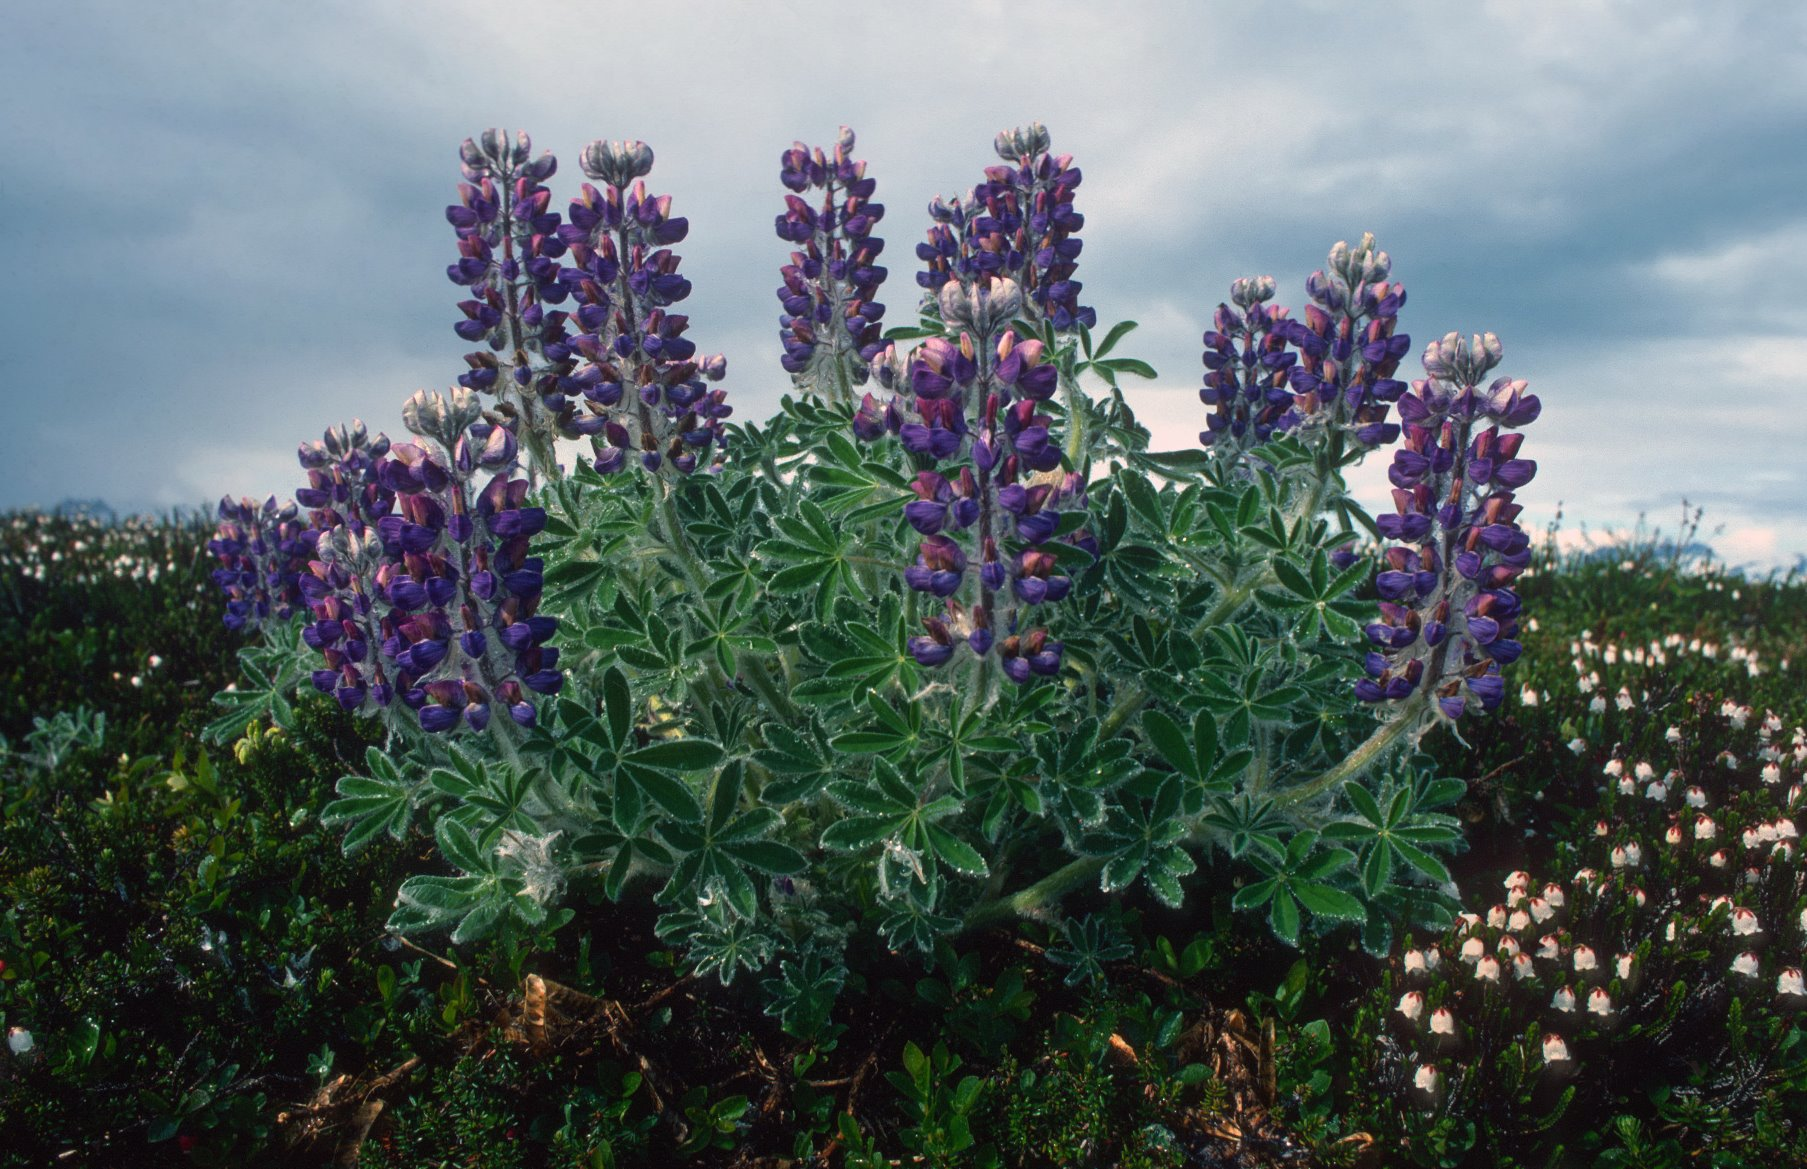 Lupine plants near the summit of Tree Mountain.